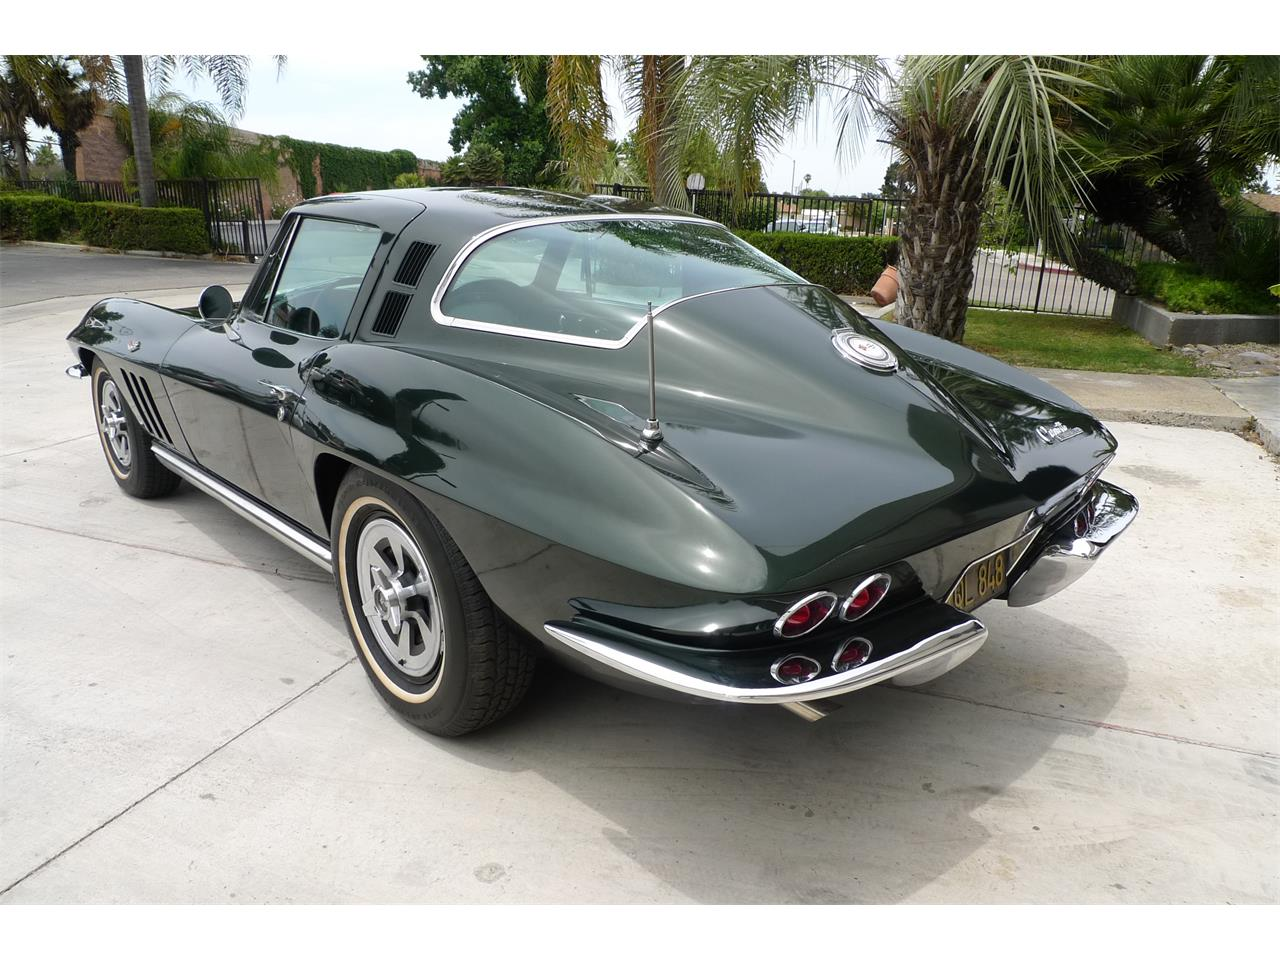 Large Picture of '65 Chevrolet Corvette - $49,975.00 Offered by Coast Corvette - Q4J8